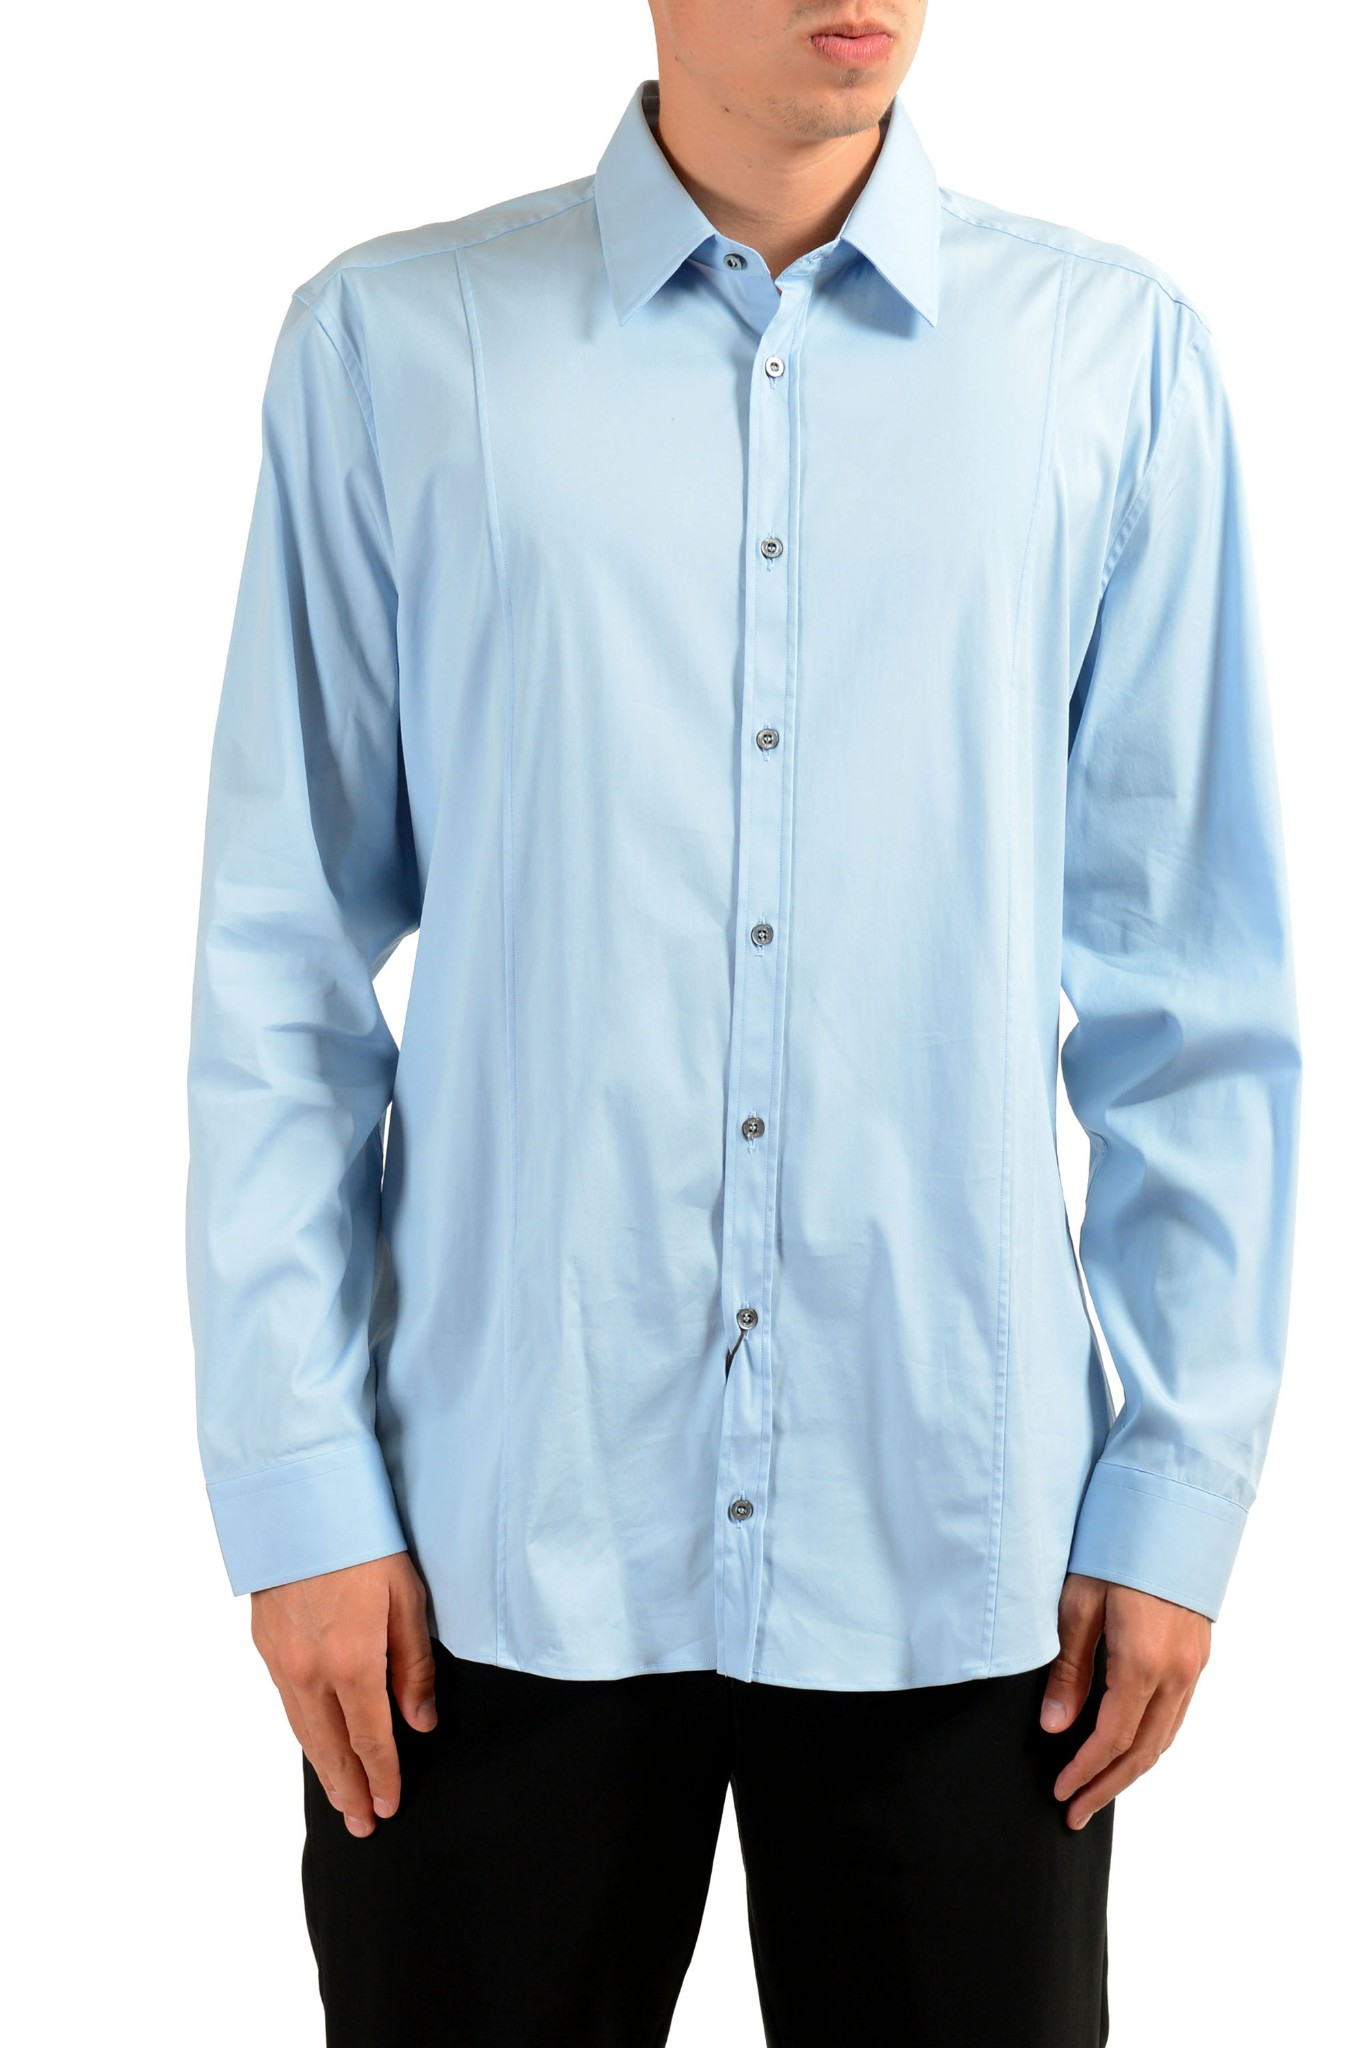 862211bb6 Gucci Men's Light Blue Long Sleeve Dress Shirt | eBay